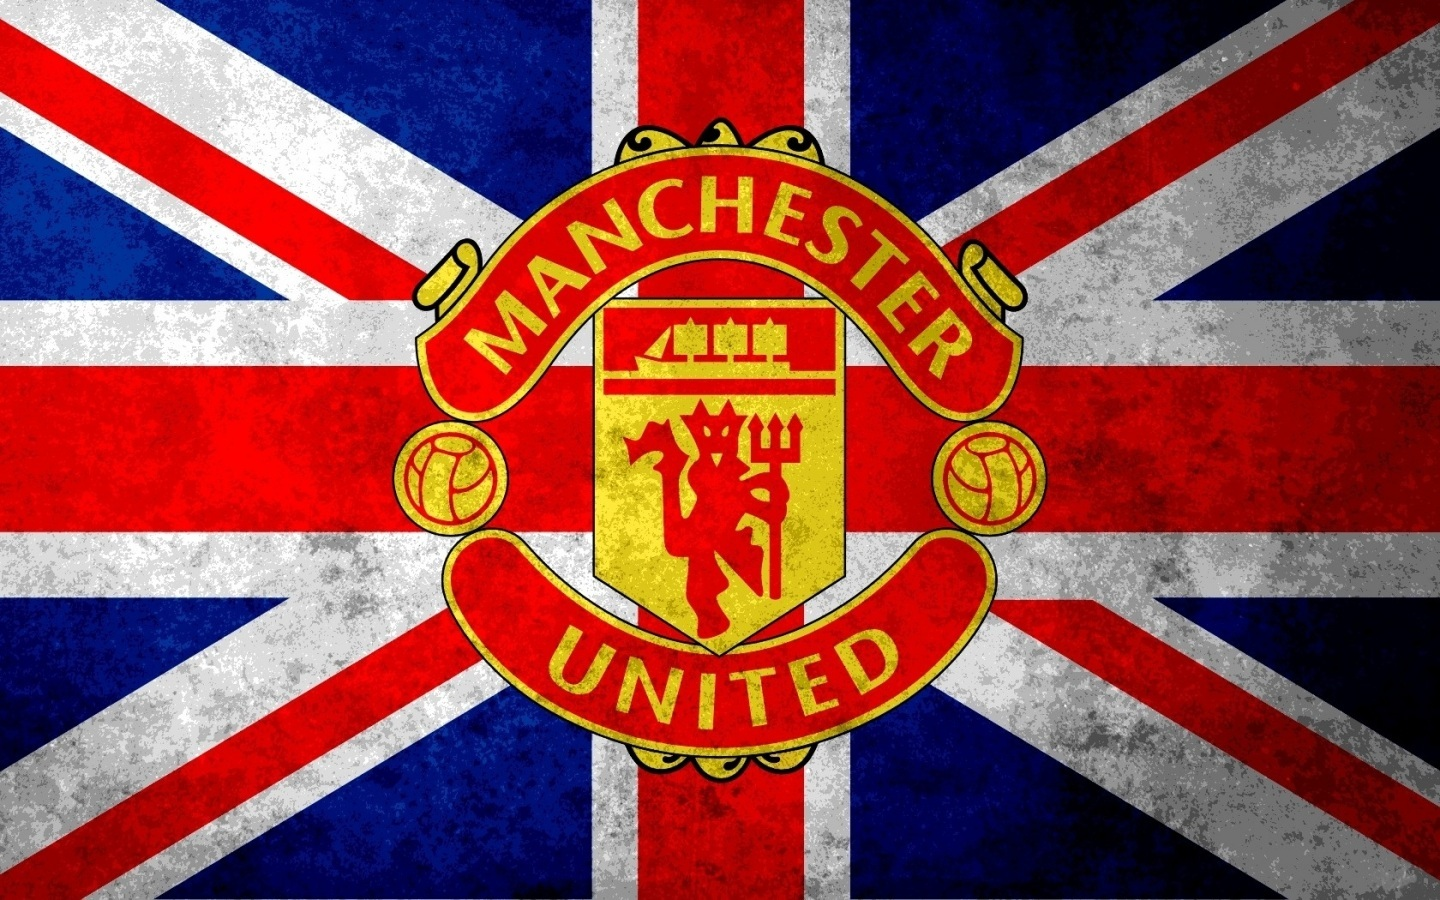 Manchester United F C Flag 4238379 1440x900 All For Desktop